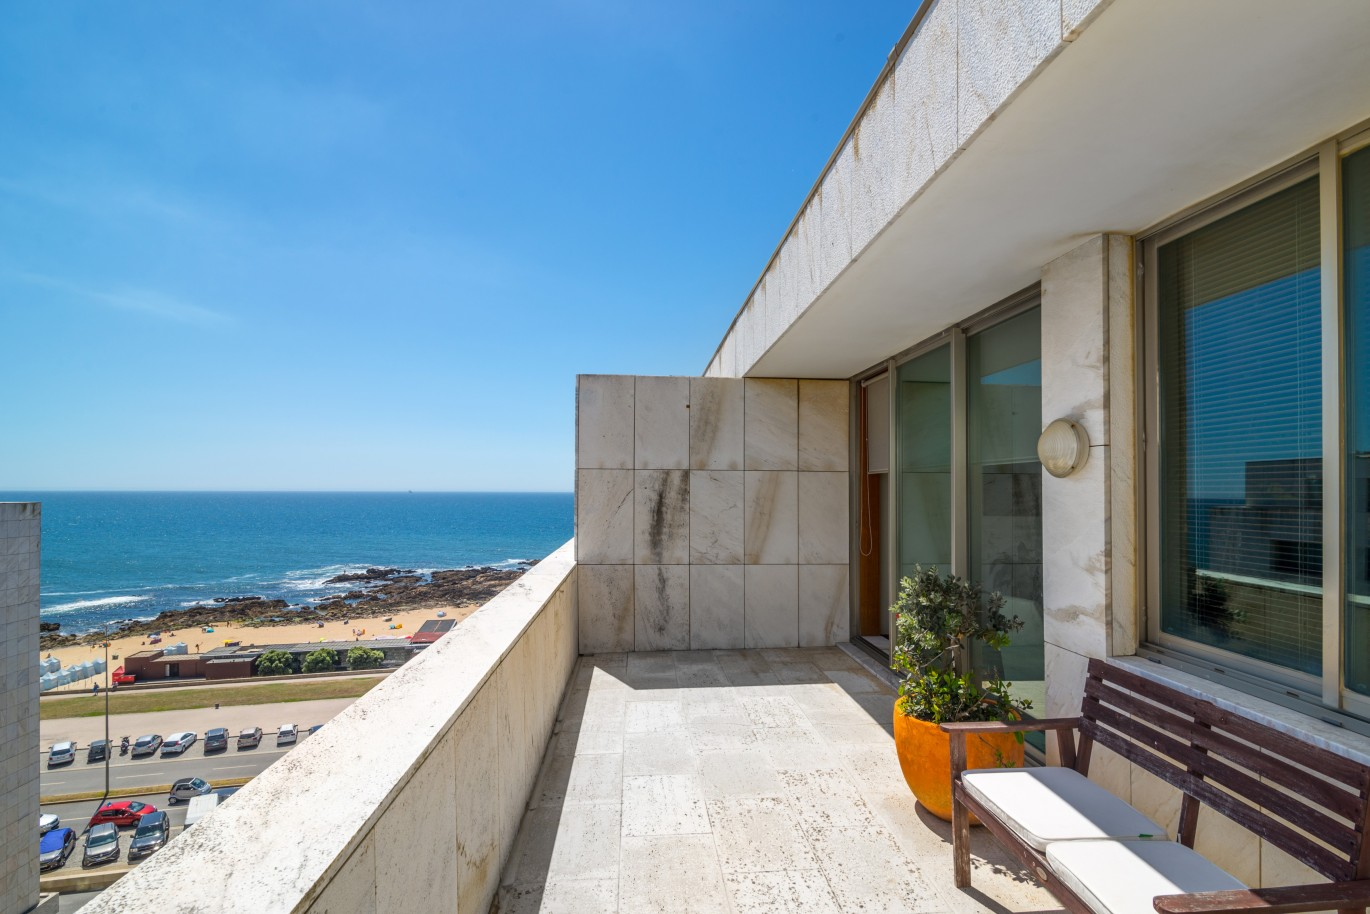 penthouse-apartment-with-sea-views-for-sale-in-porto